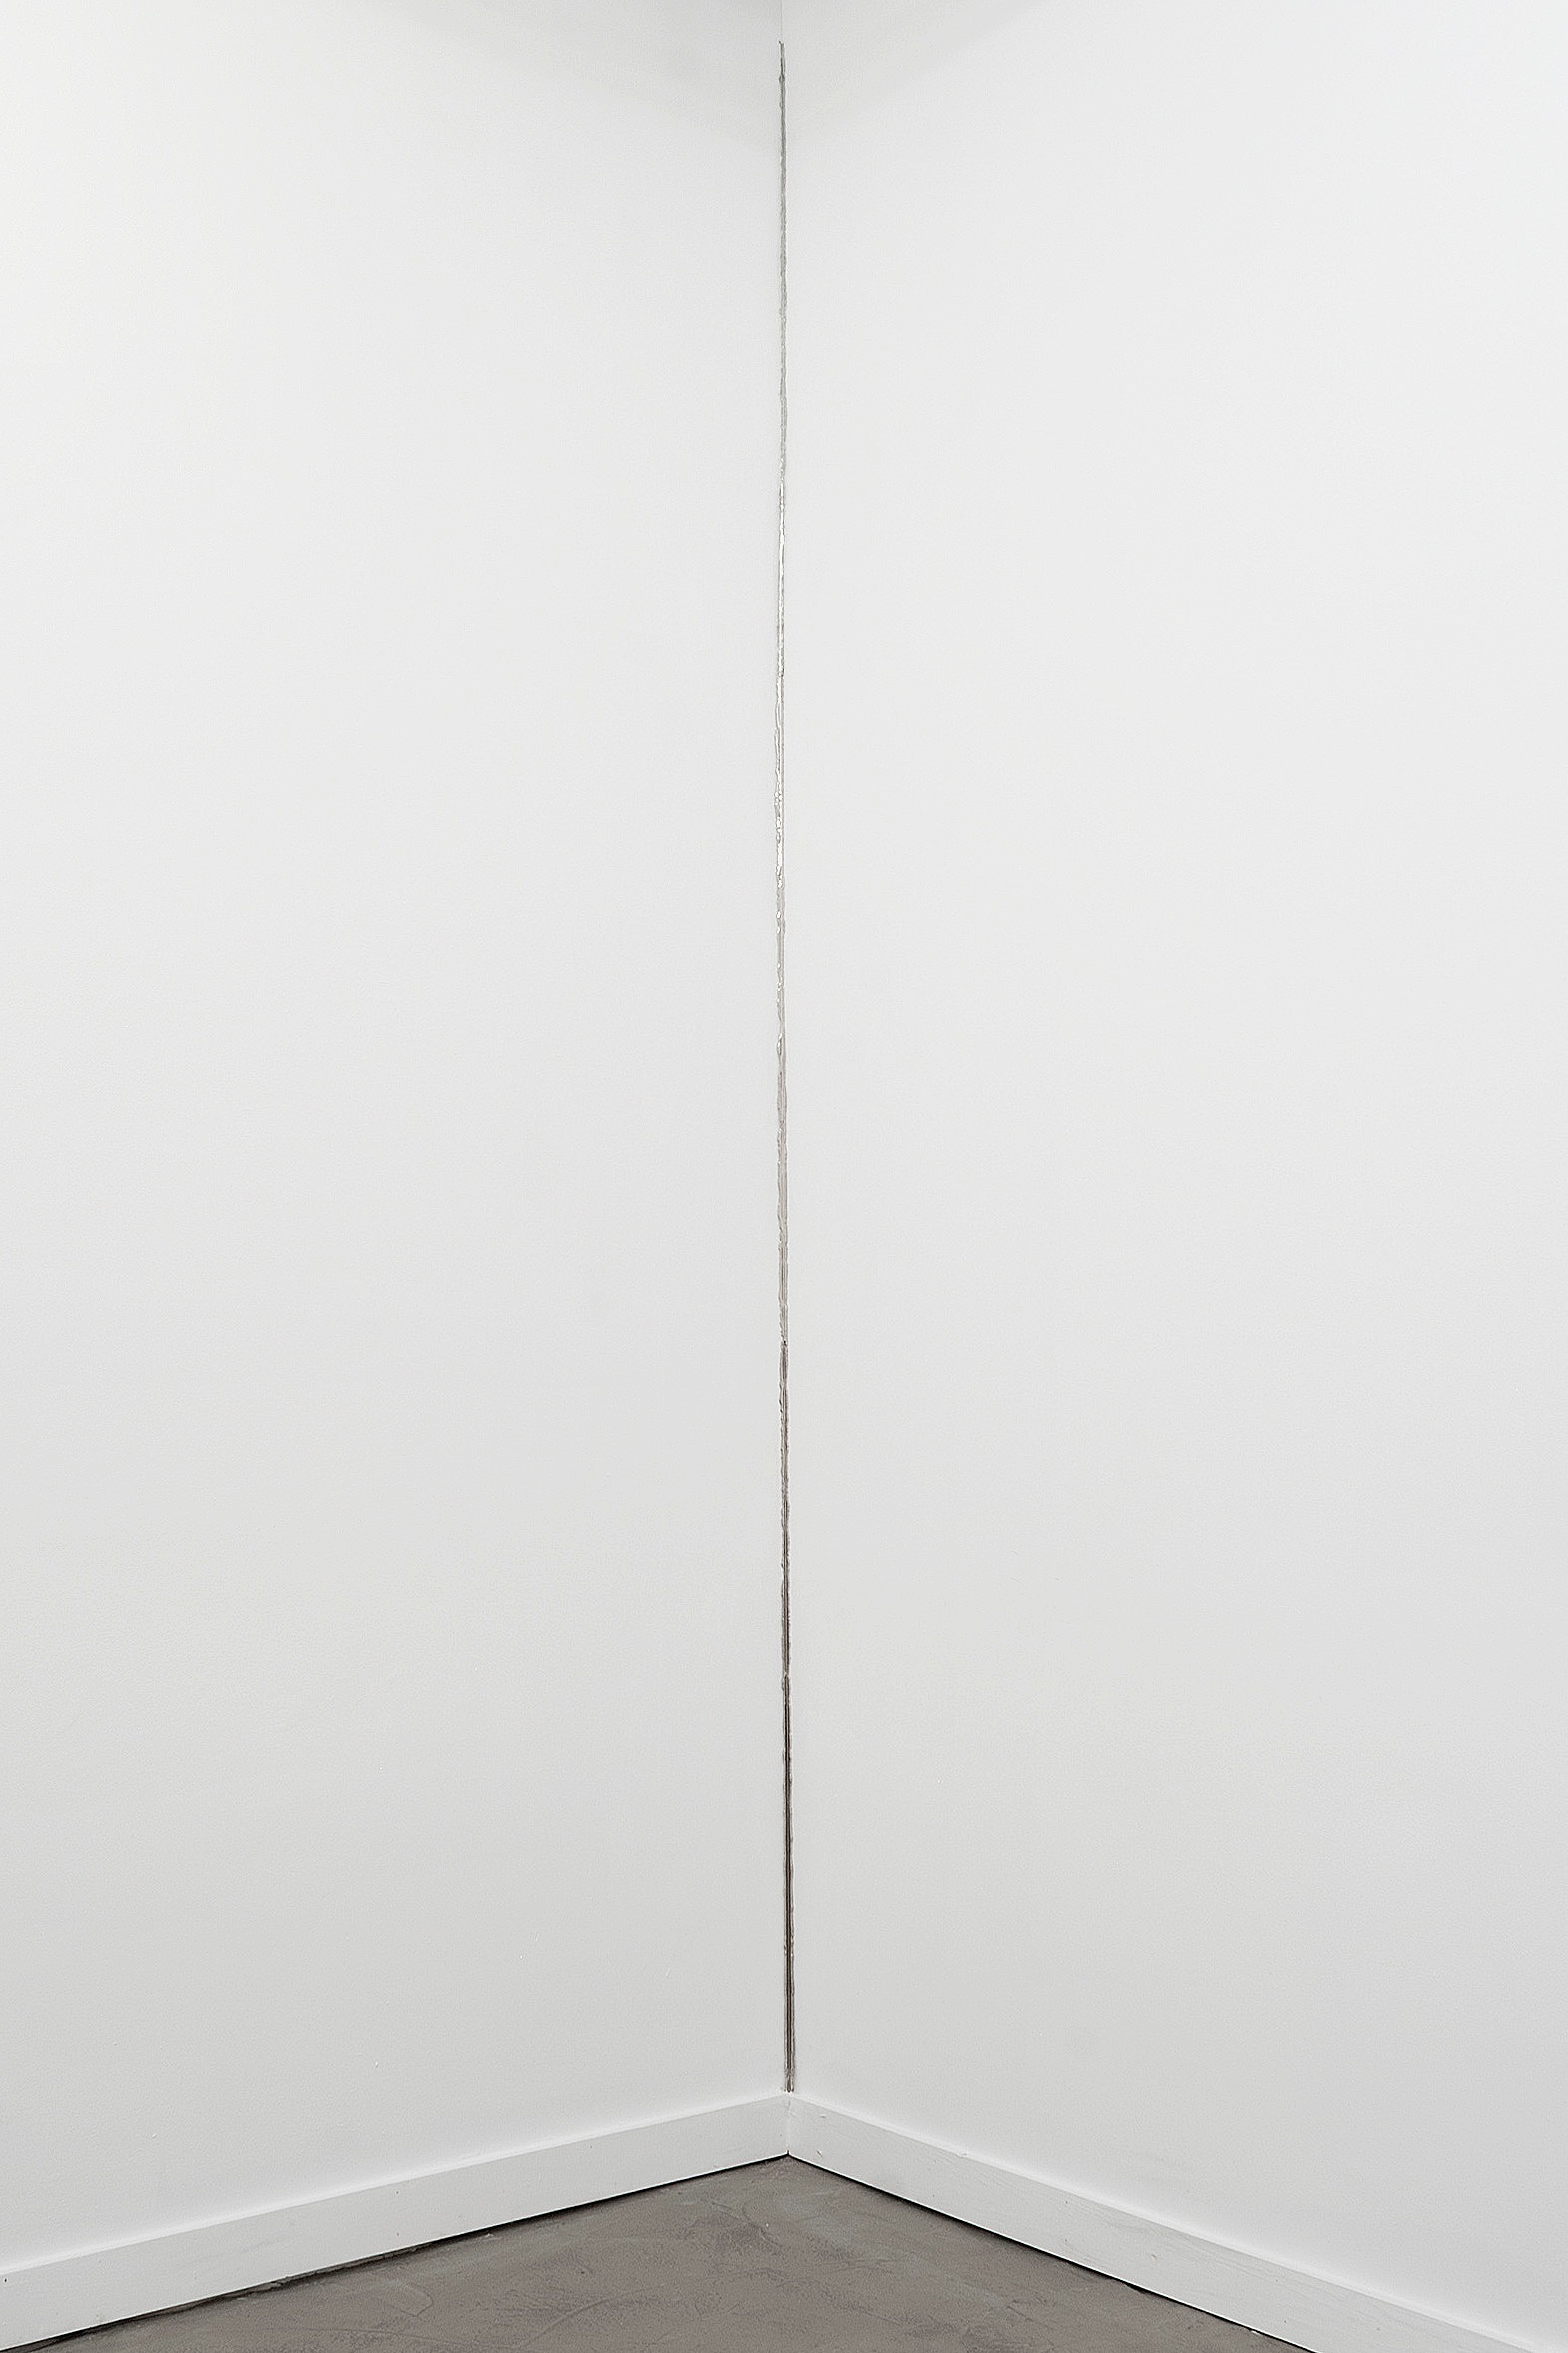 Esquina, 2014. Nickel plated and mirror polished steel, 98 x 3 inches -